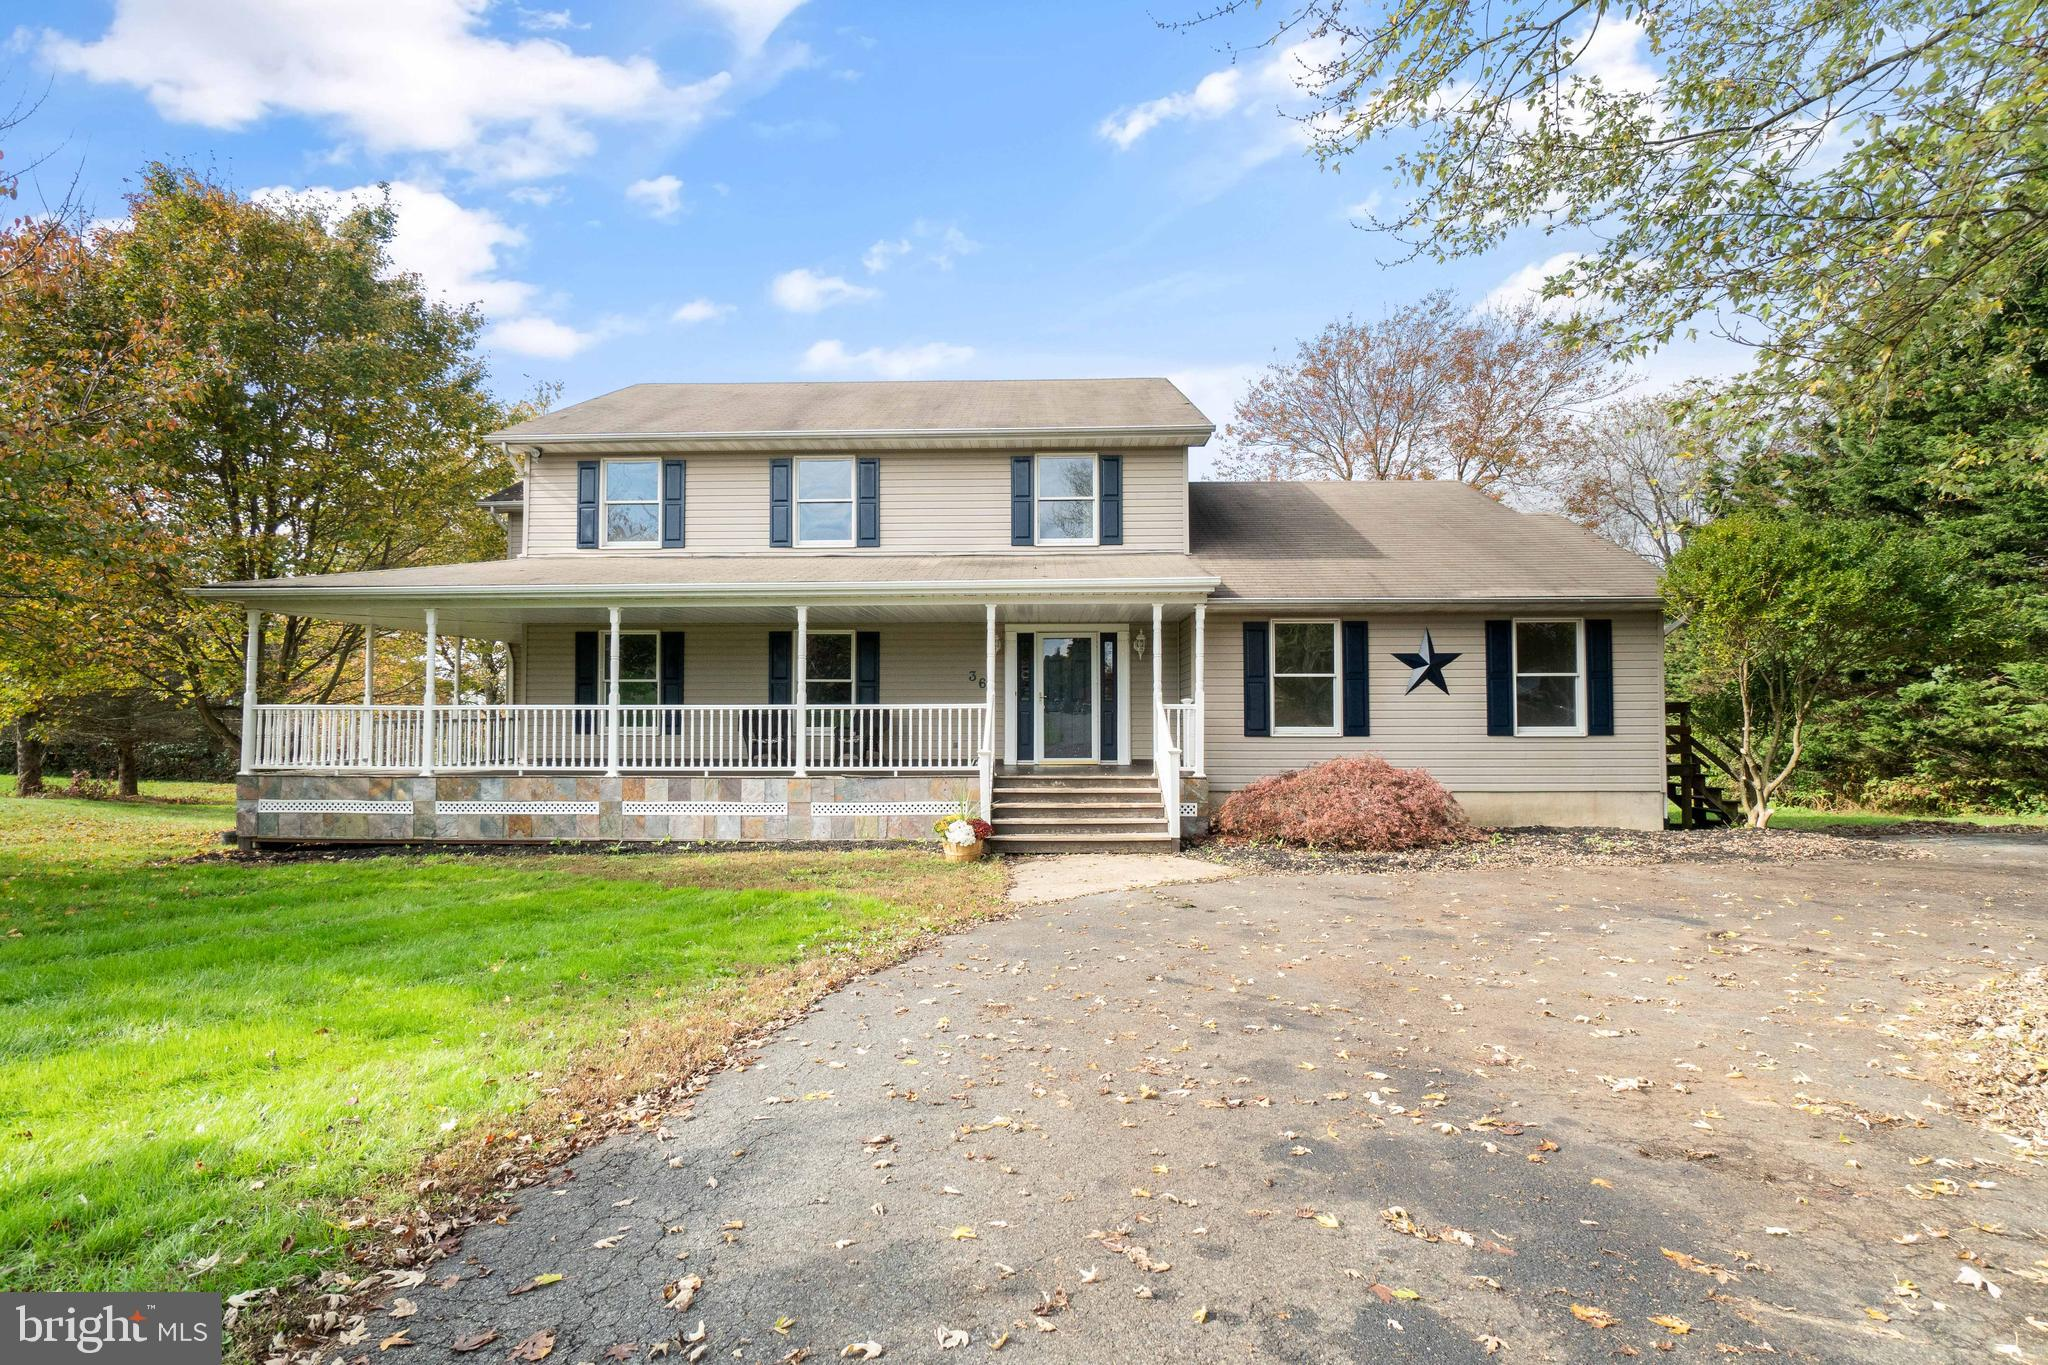 Beautiful colonial with wrap around porch on almost 2 acres in the sought after neighborhood of Fox